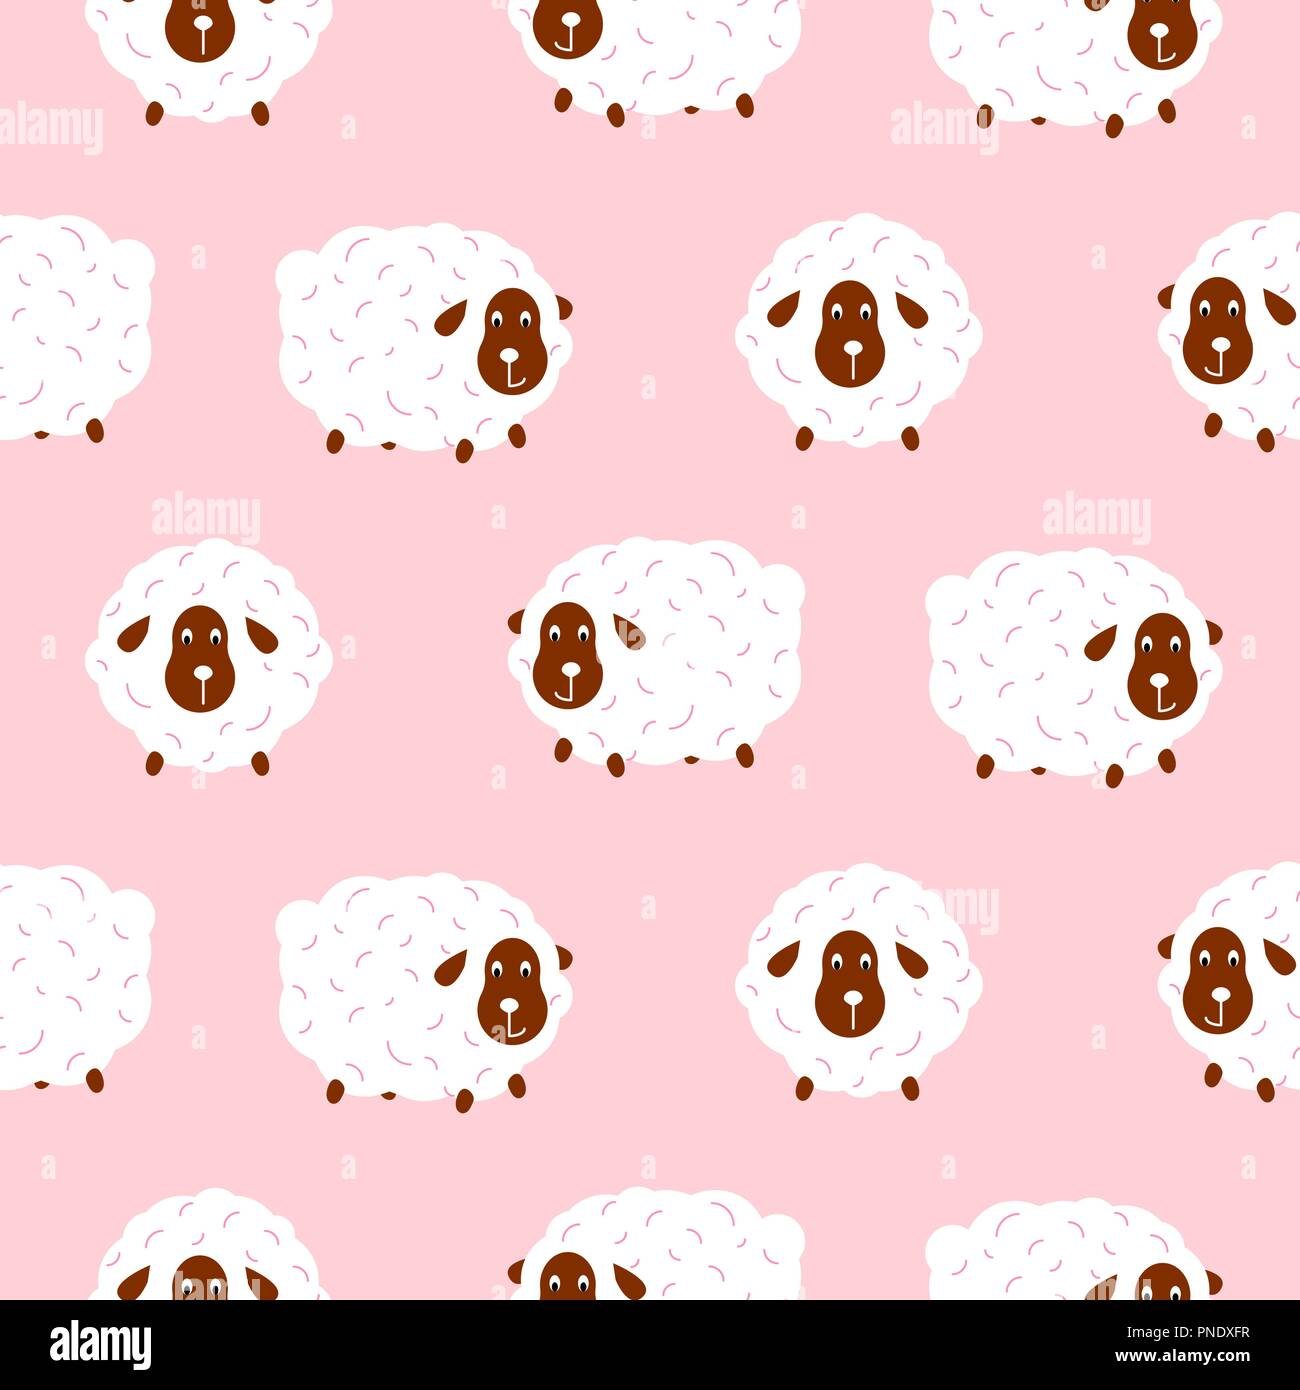 Baby Sheep Stock Vector Images - Alamy